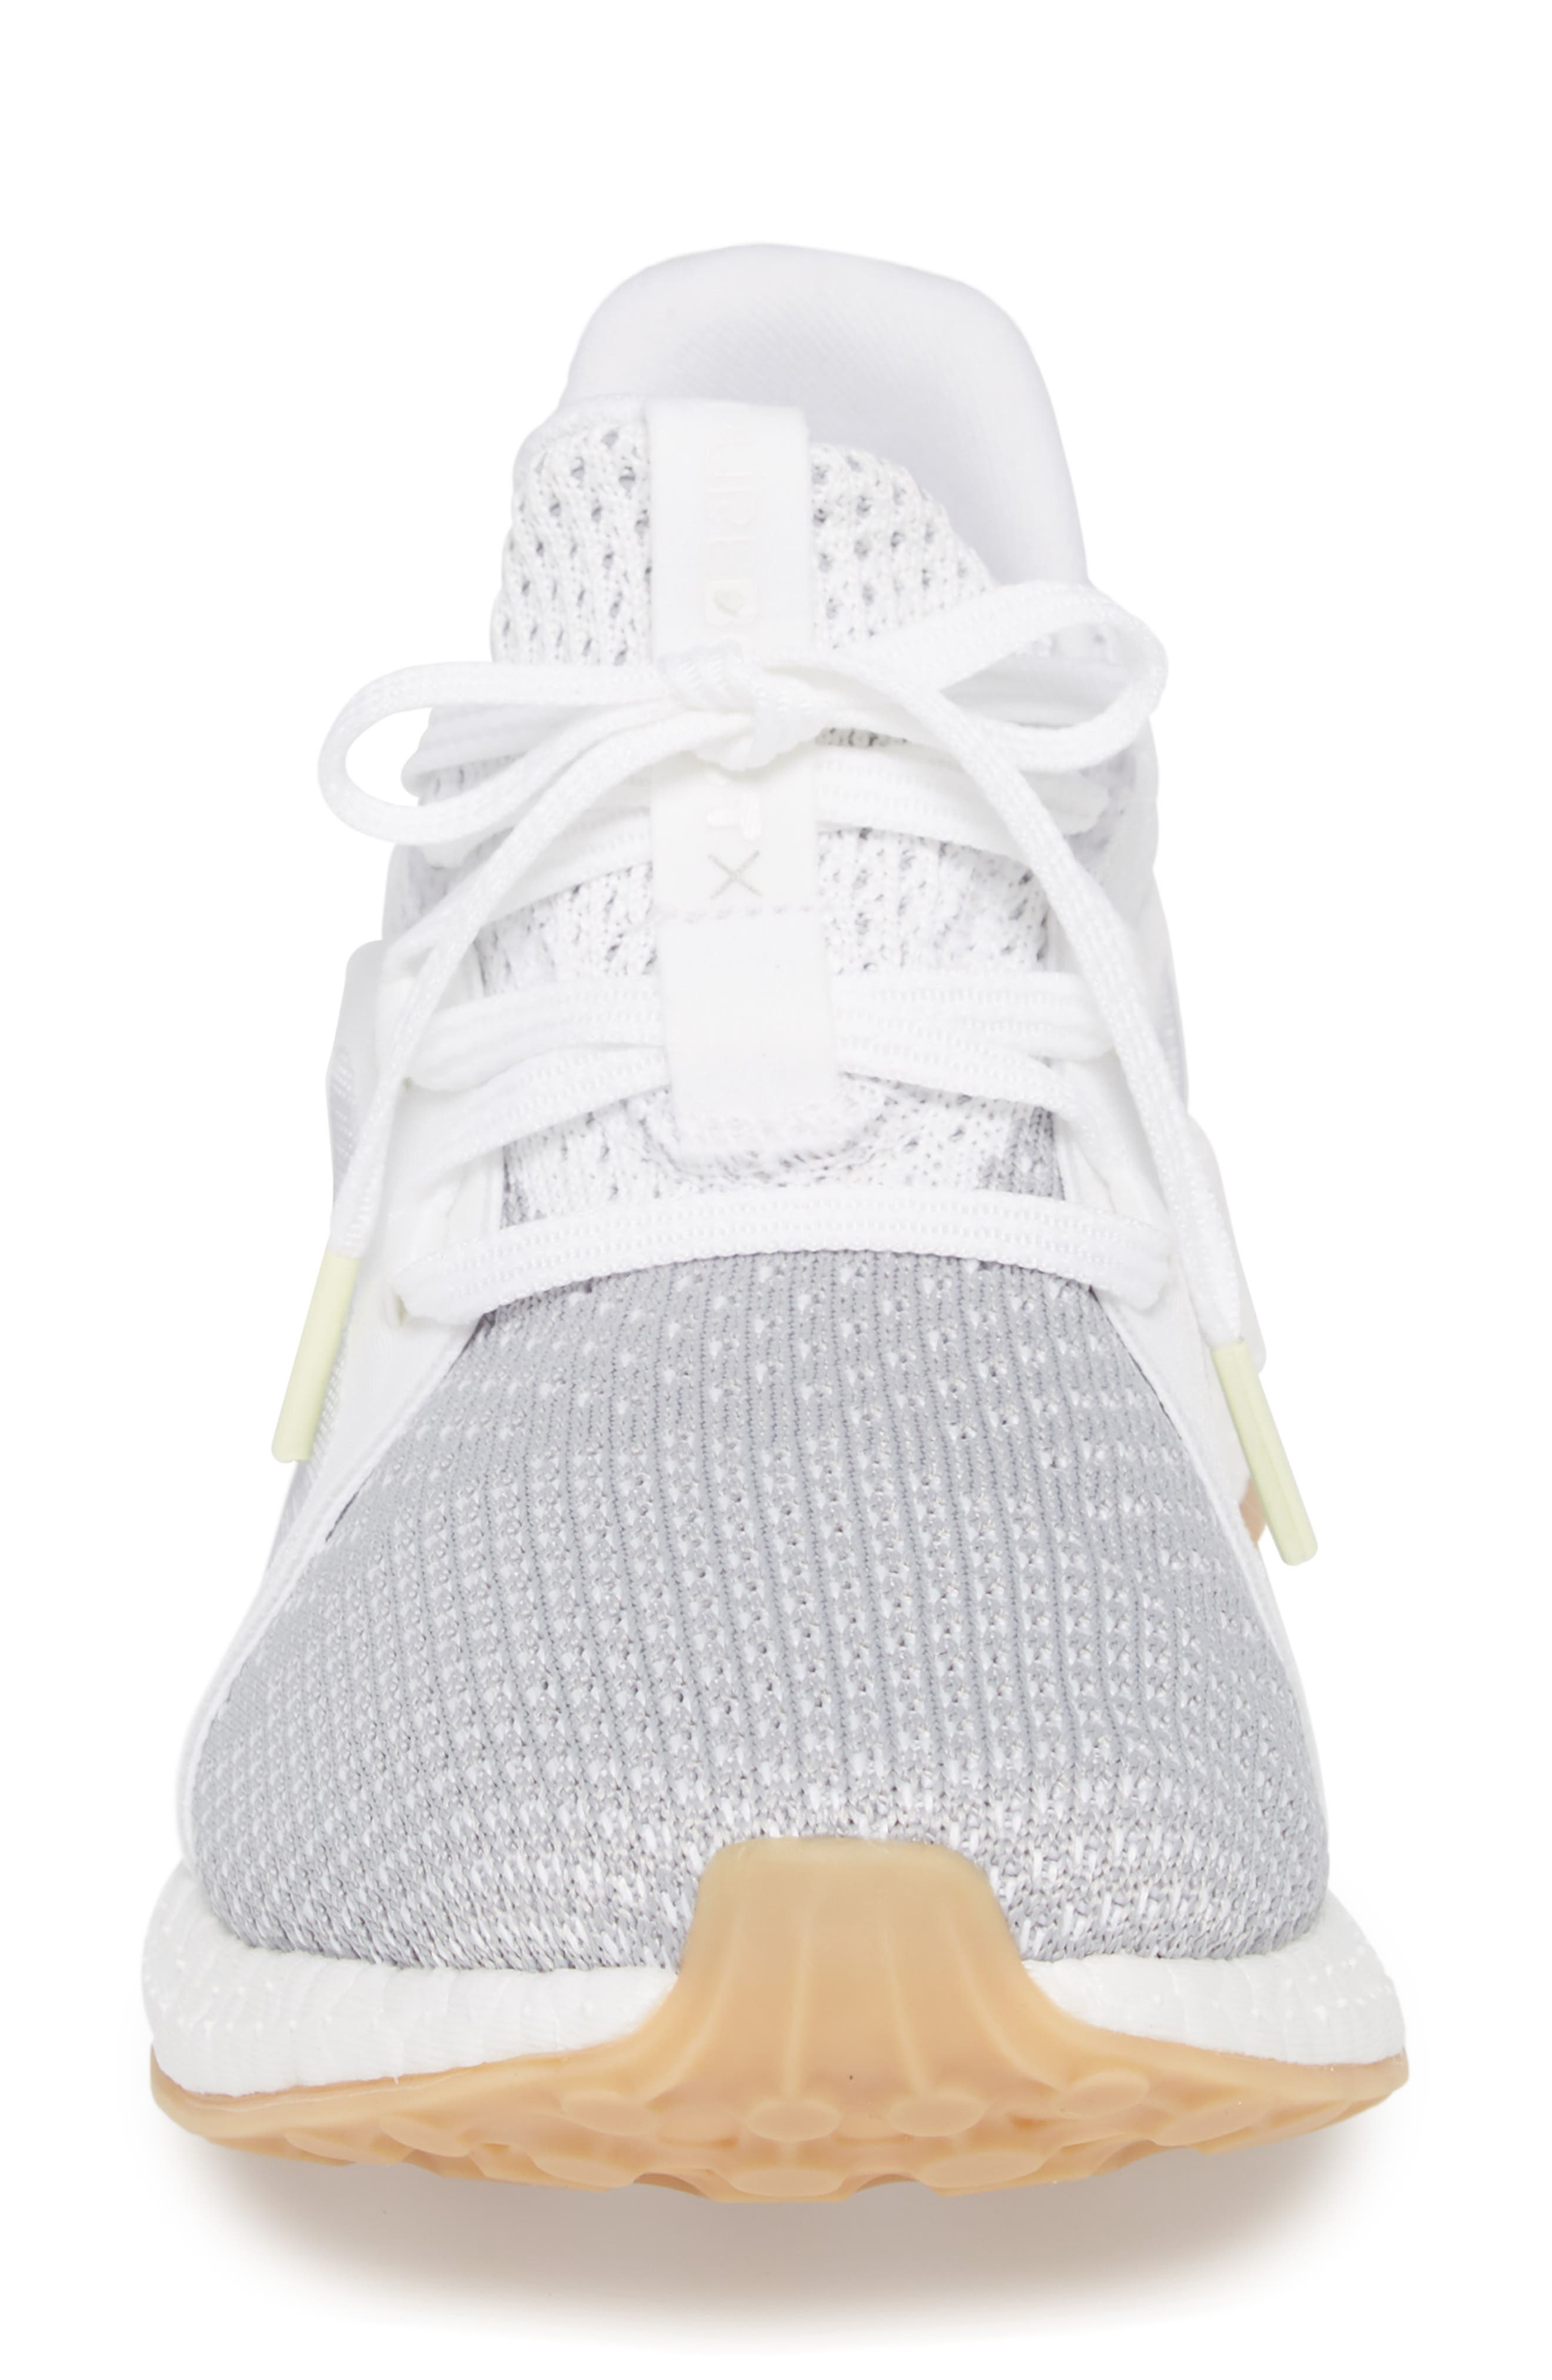 Pureboost X Clima Sneaker,                             Alternate thumbnail 4, color,                             100